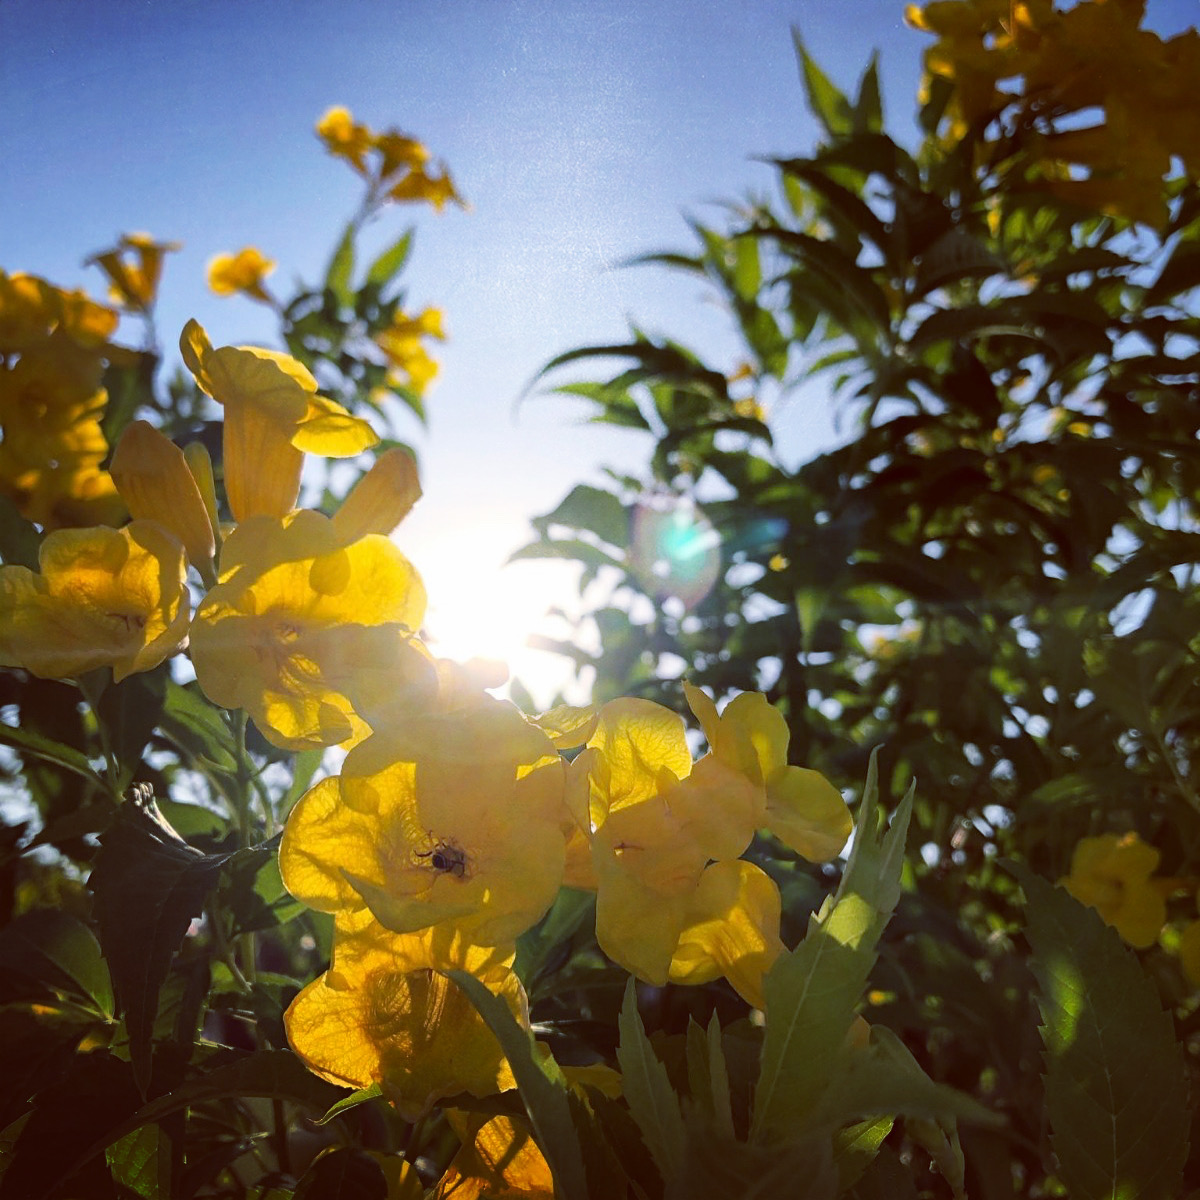 Flowers Over The Noontime Sun